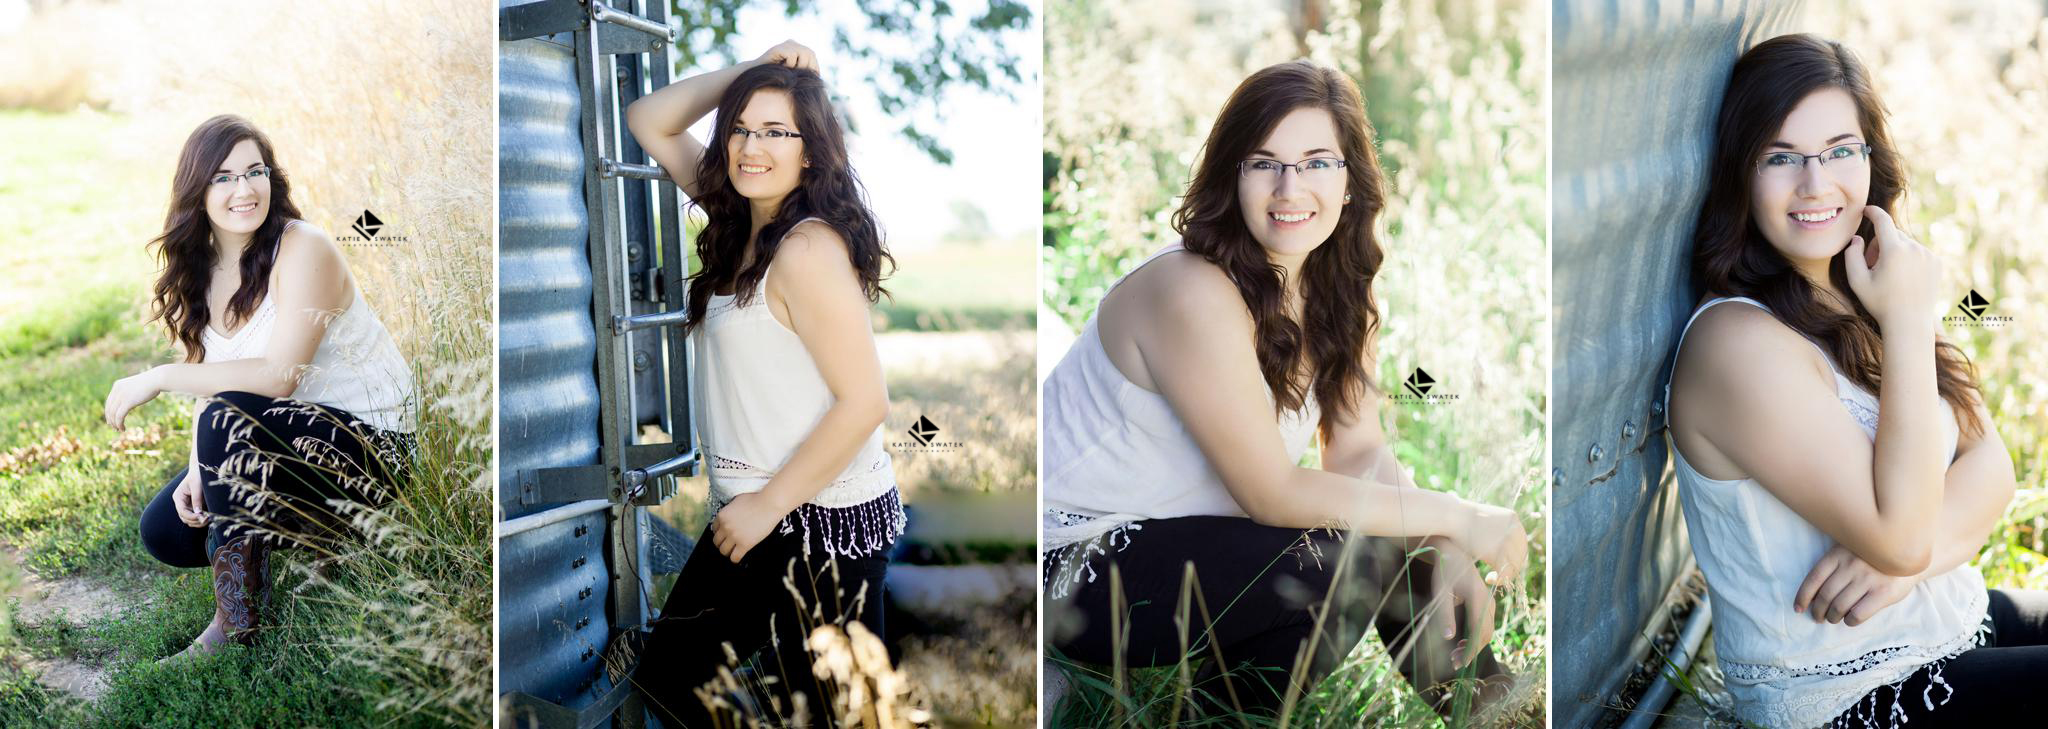 brunette nebraska senior on senior picture day by a South Dakota Senior Picture Photographer, Katie Swatek Photography